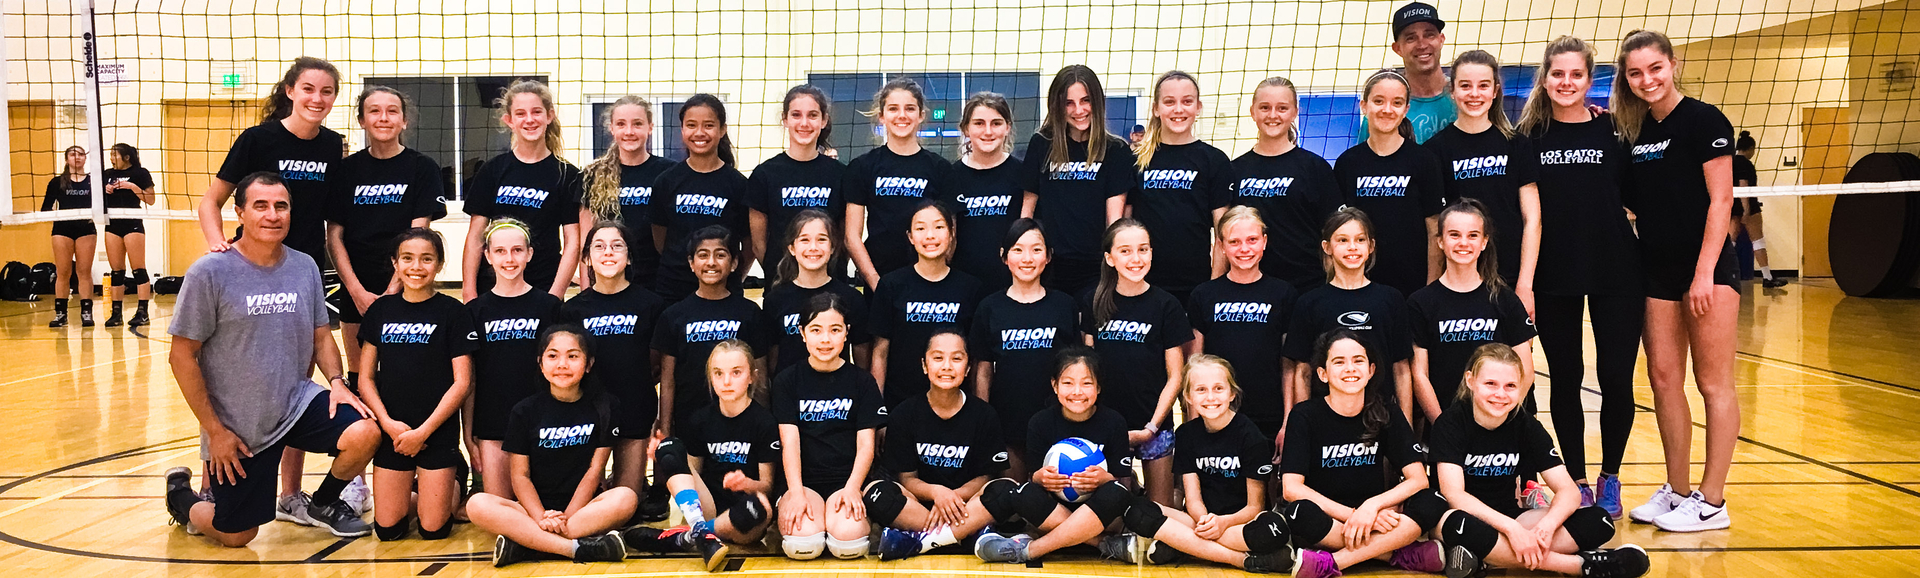 Vision Volleyball Club